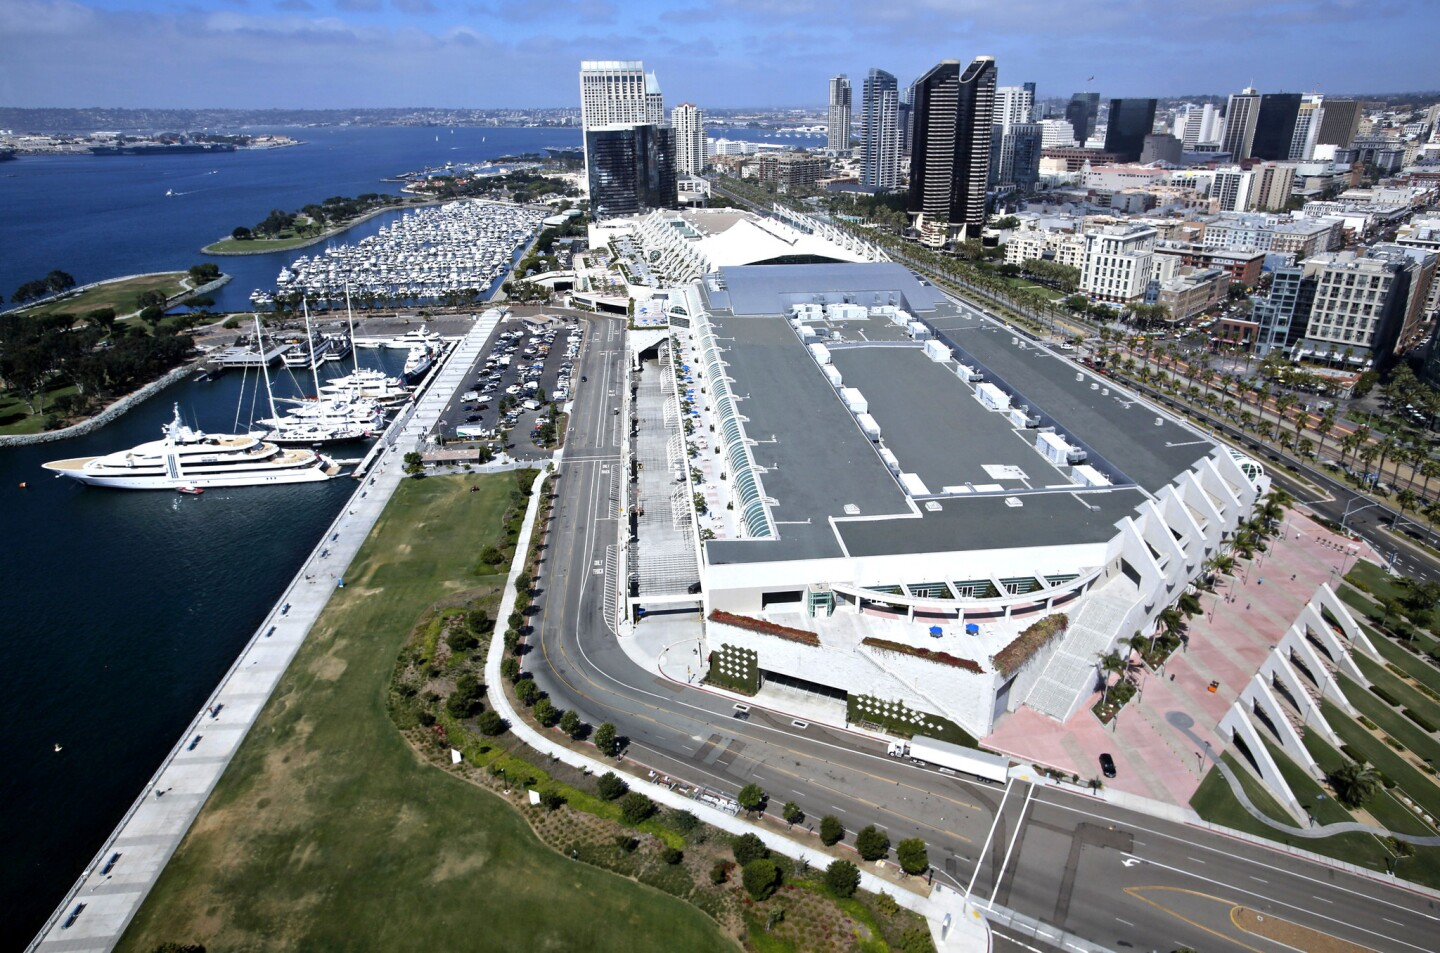 The convention center has housed the annual Comic-Con event for years. But the San Diego Chargers oppose the convention center expansion and favor building an additional convention venue several blocks away.